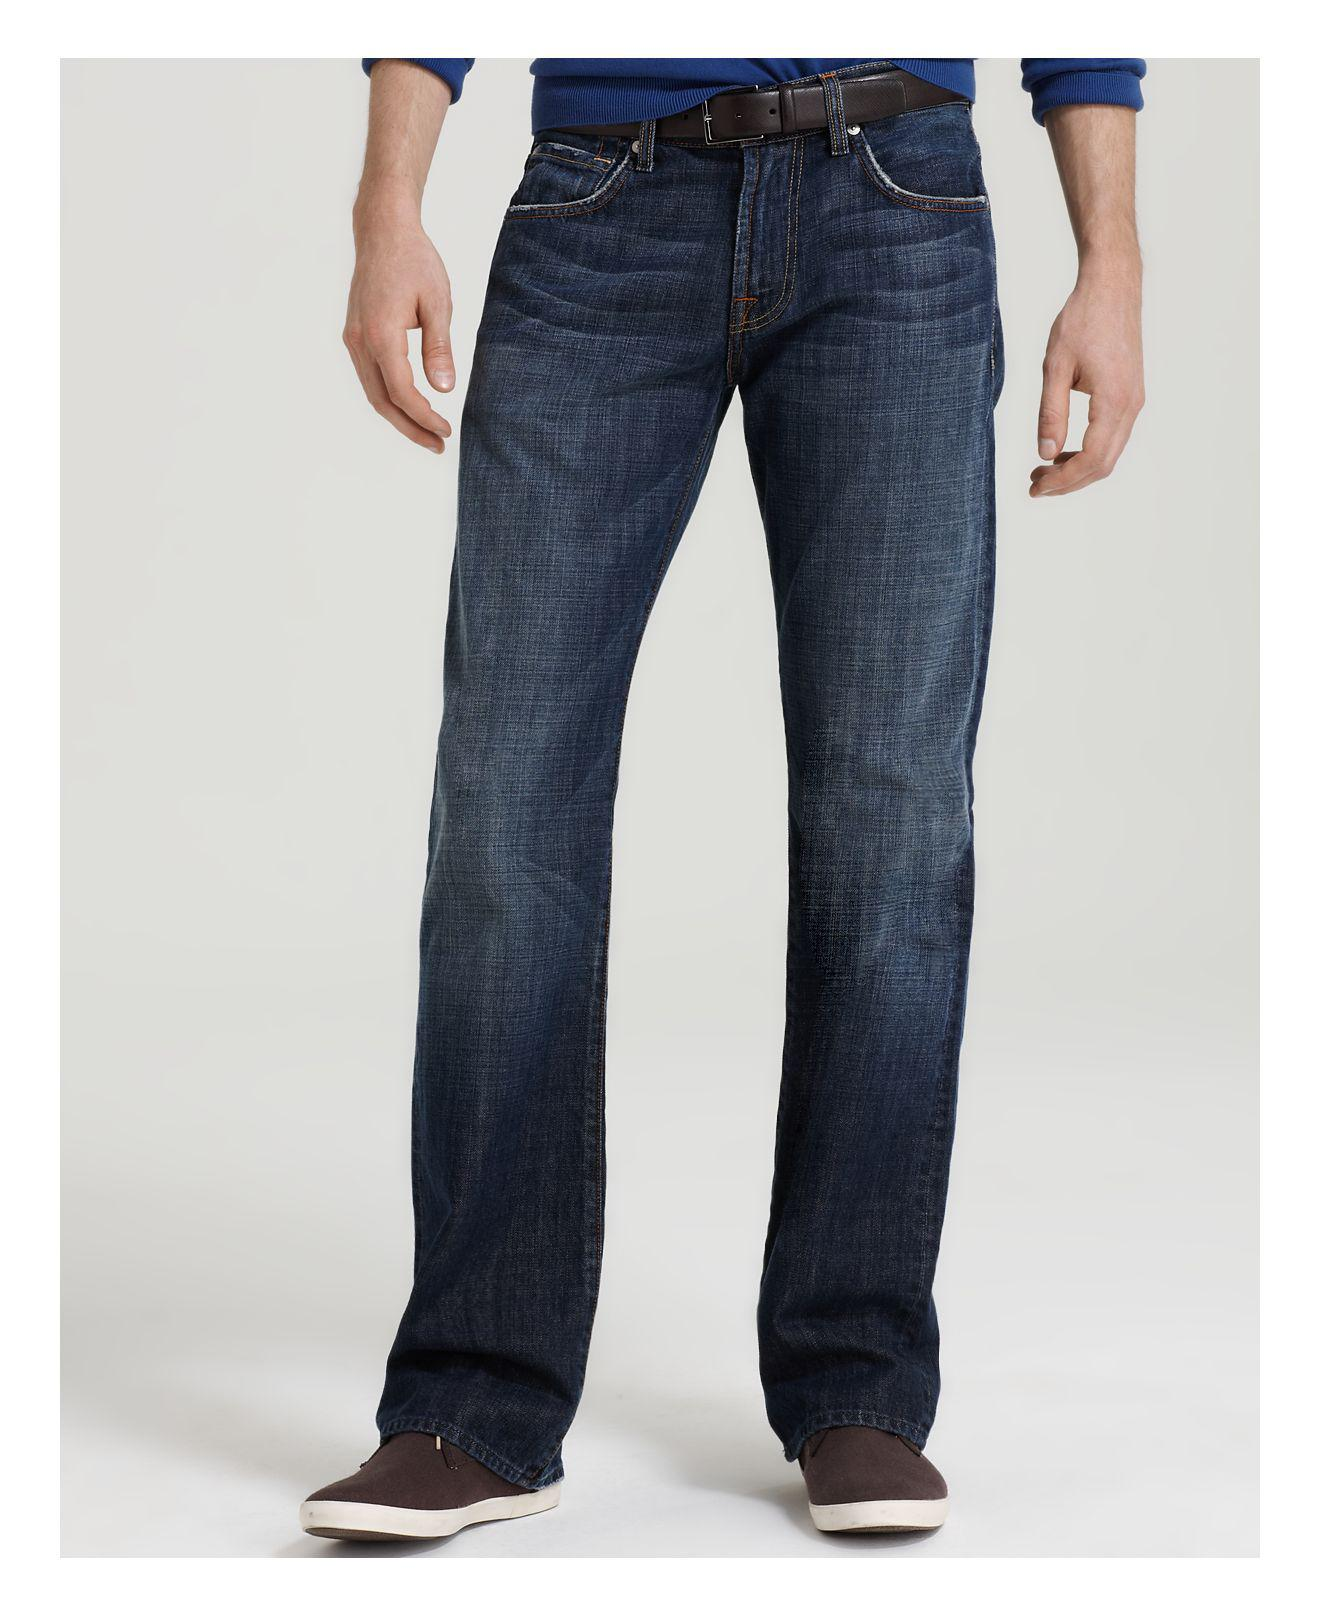 Brett' bootcut jeans (new york dark)